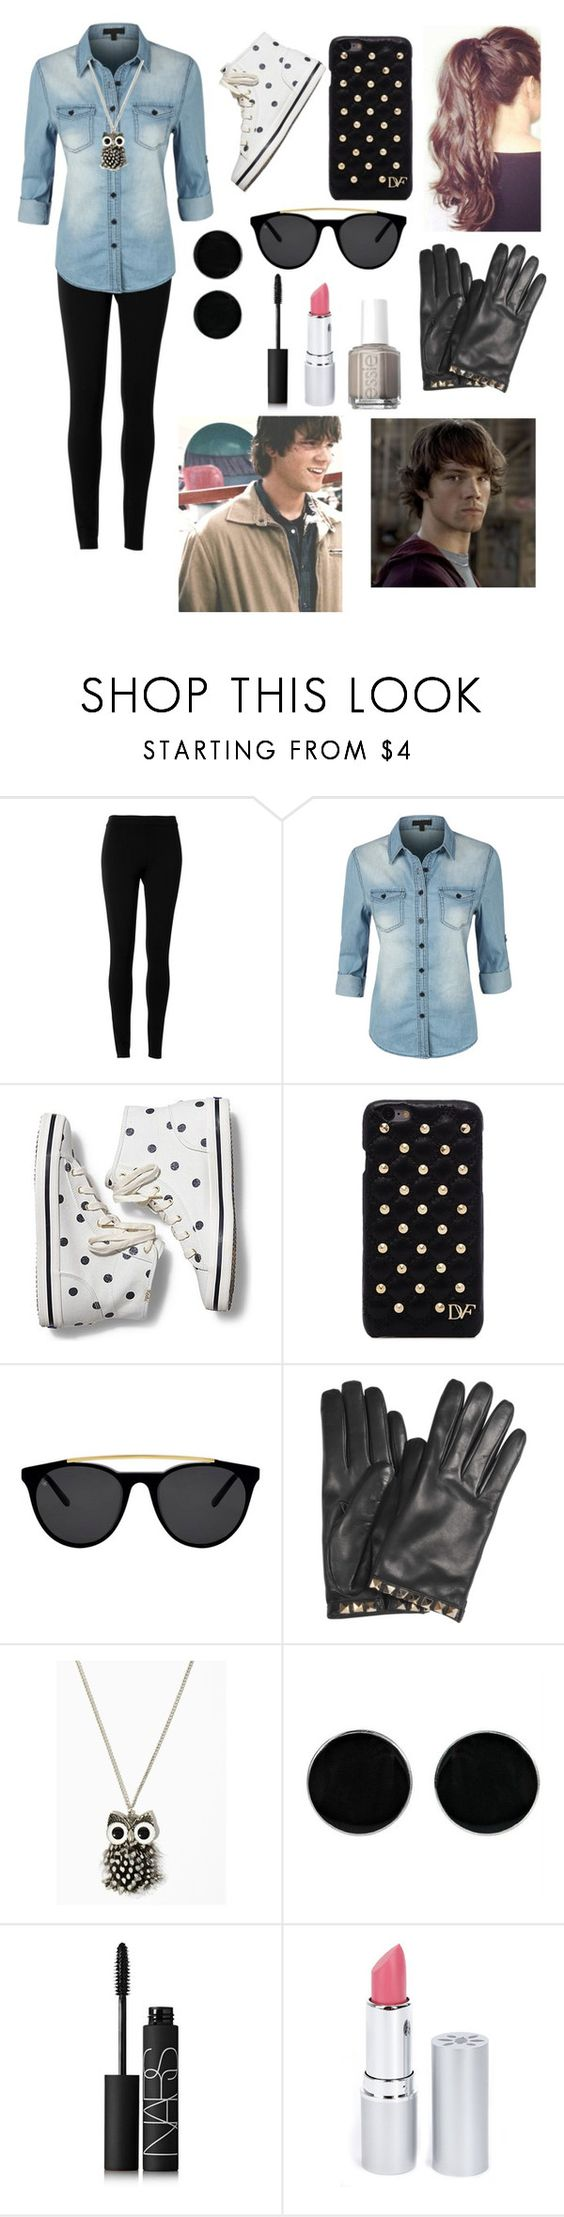 """""""Casual date with Sam Winchester ❤️❤️"""" by gglloyd ❤ liked on Polyvore featuring Max Studio, LE3NO, Keds, Diane Von Furstenberg, Smoke & Mirrors, Valentino, AeraVida, NARS Cosmetics, HoneyBee Gardens and Essie"""